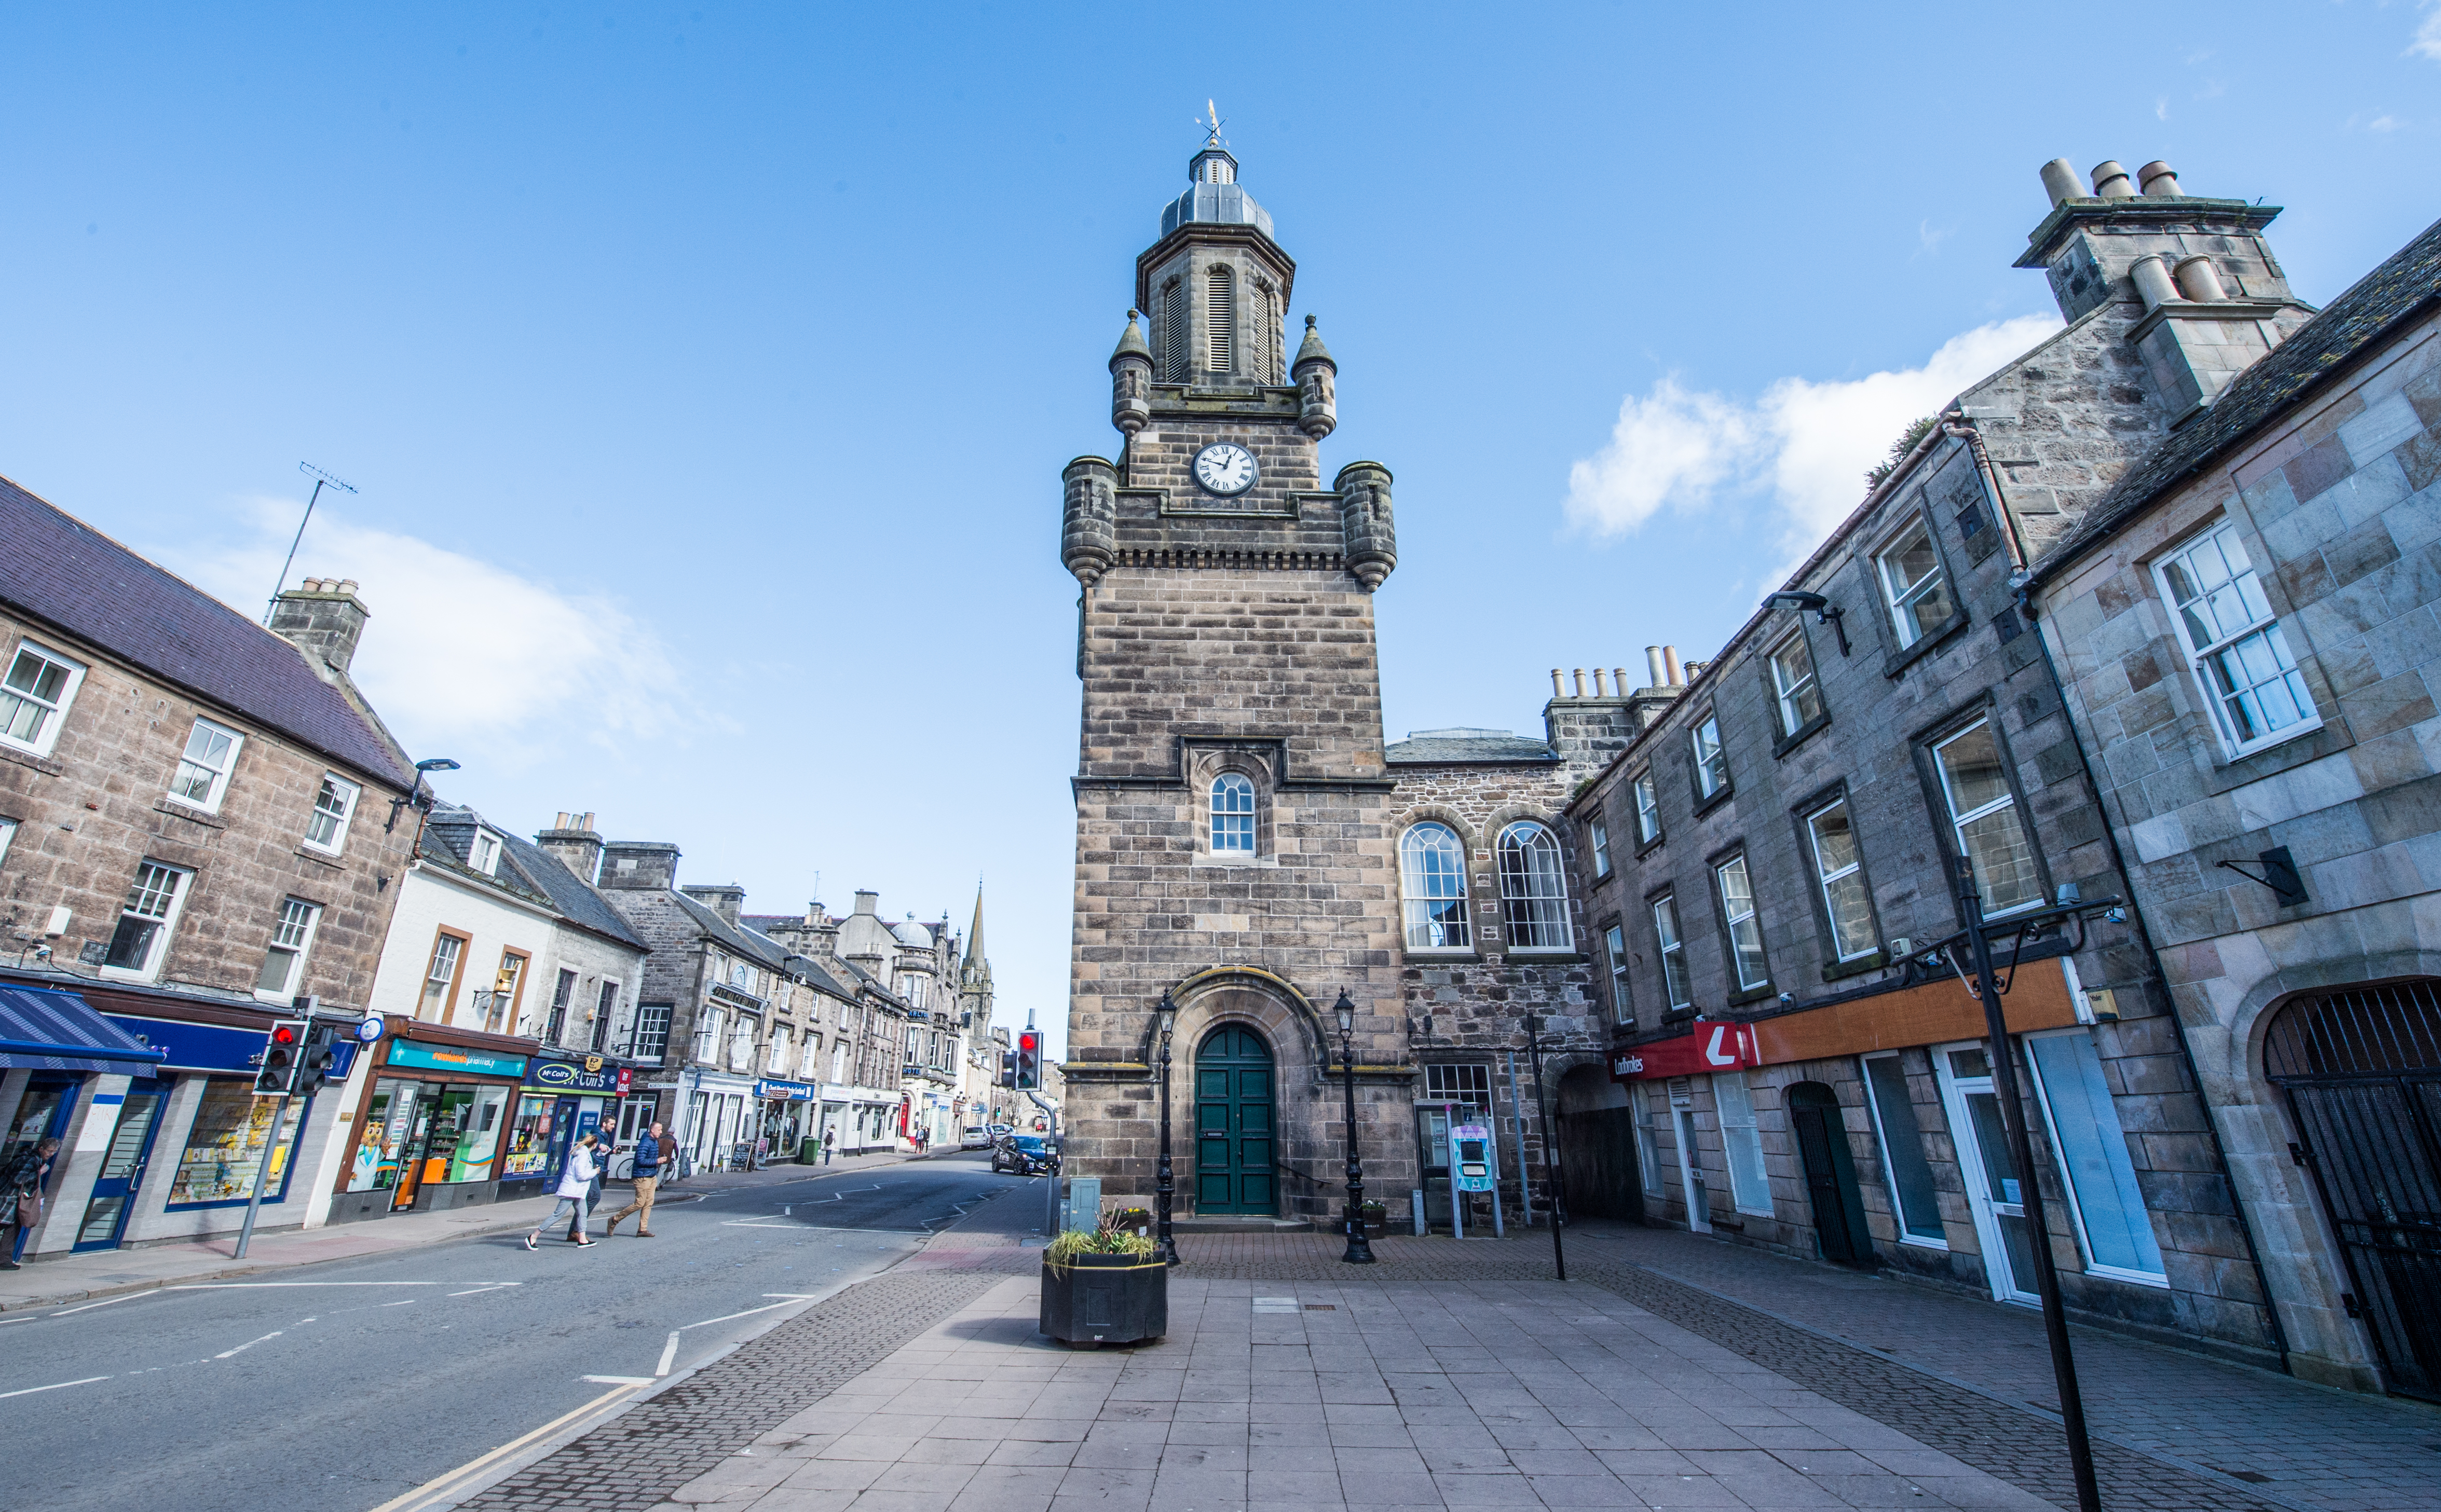 Plans for unused laundry buildings to be transformed into accommodation in Forres has been submitted.